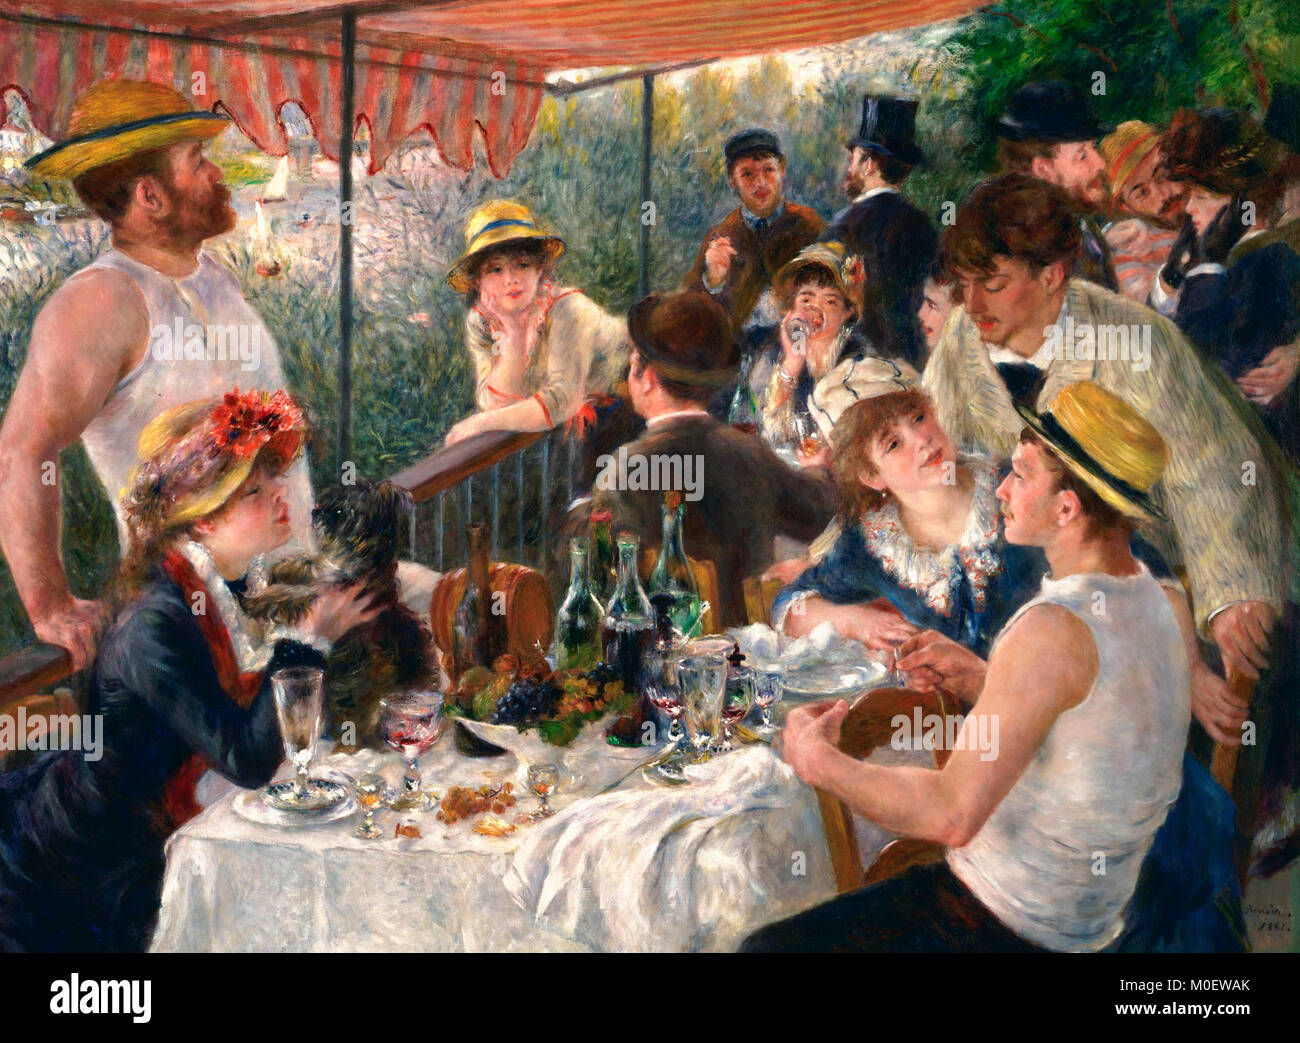 Luncheon of the Boating Party - Pierre-Auguste Renoir circa 1880 - Stock Image